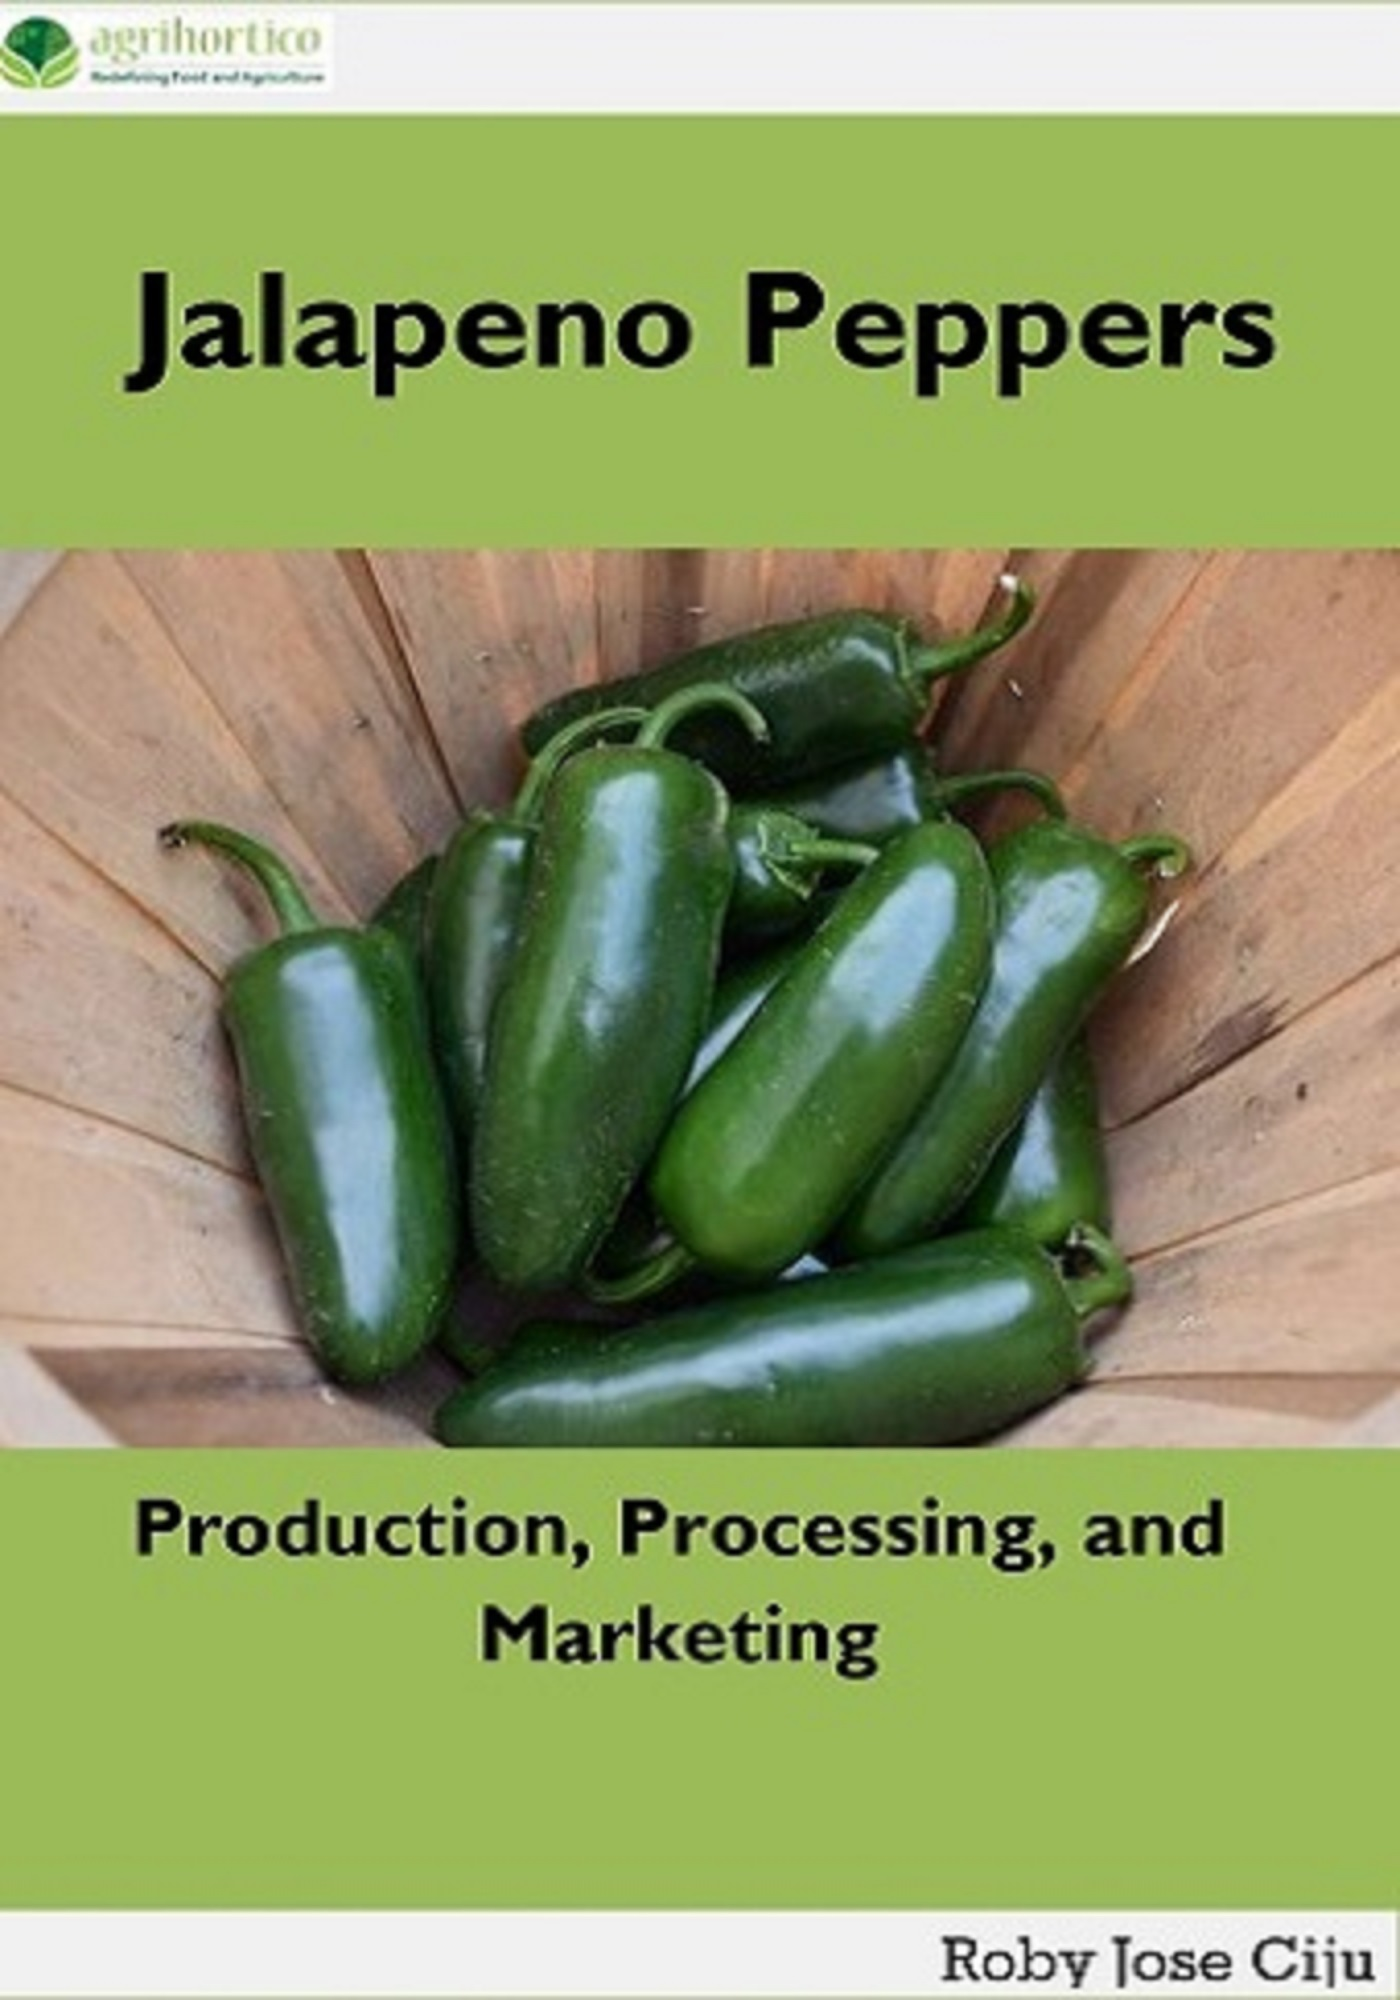 Jalapeno Peppers: Production, Processing, and Marketing, an Ebook by Roby  Jose Ciju